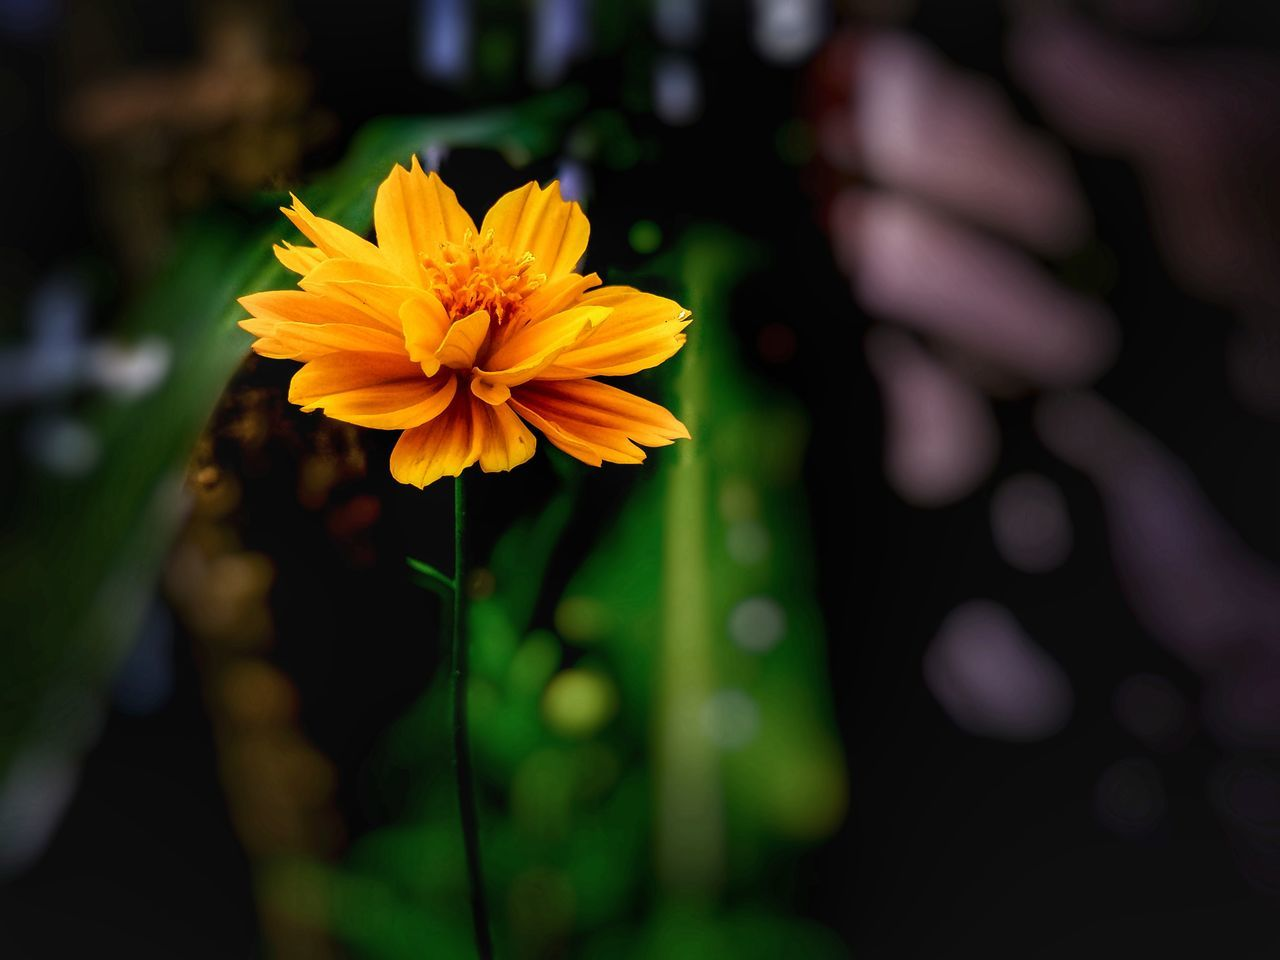 flower, yellow, nature, beauty in nature, growth, petal, plant, fragility, freshness, blooming, flower head, focus on foreground, outdoors, no people, close-up, day